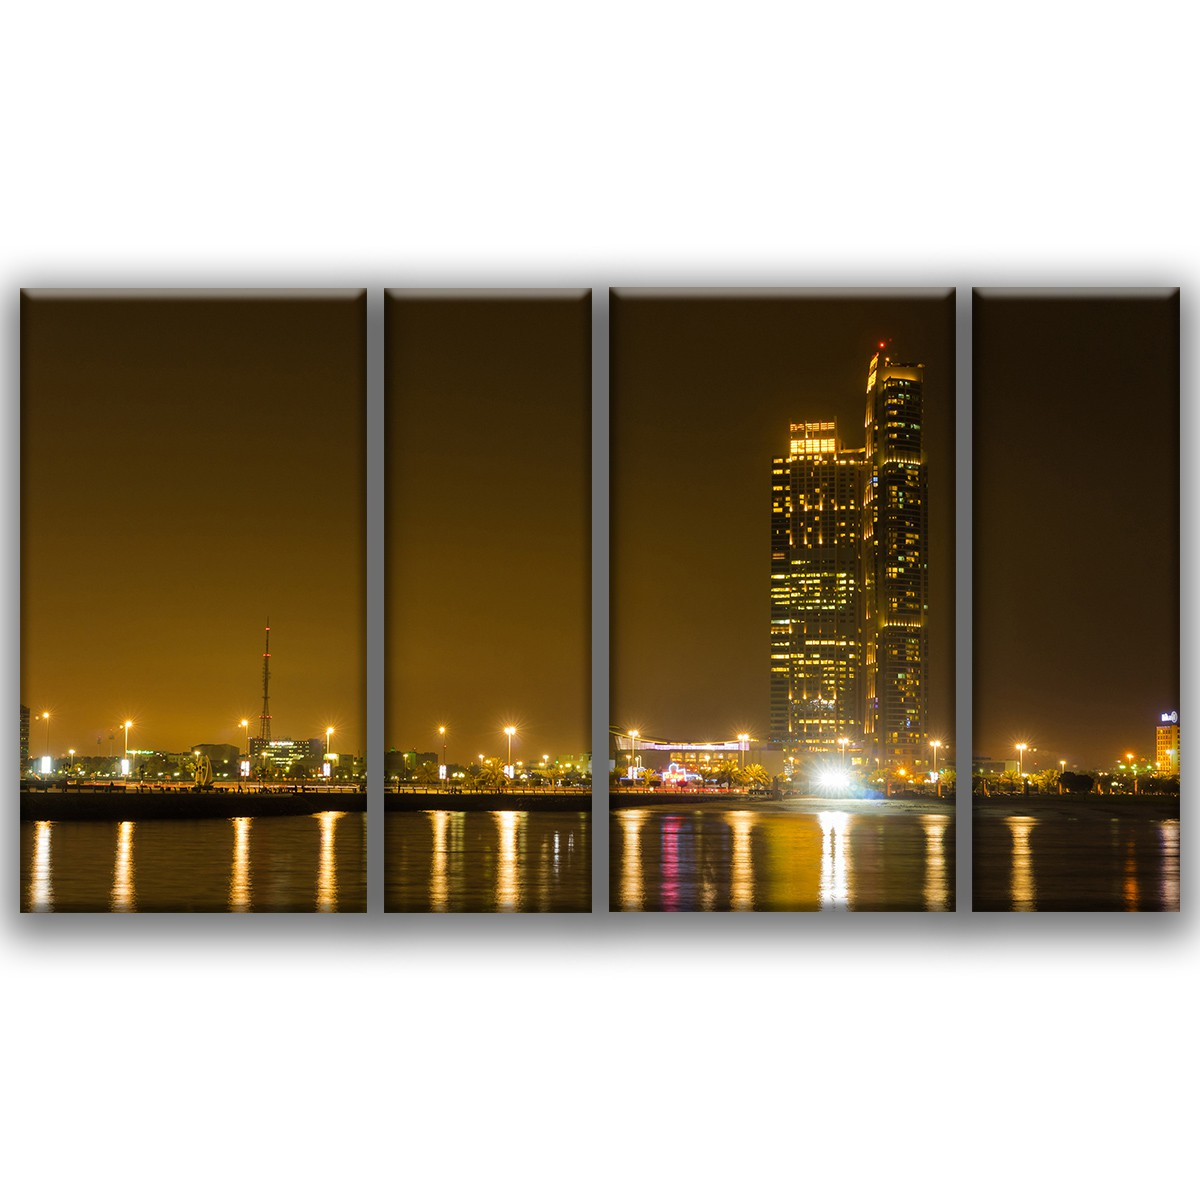 abu dhabi skyline. Black Bedroom Furniture Sets. Home Design Ideas